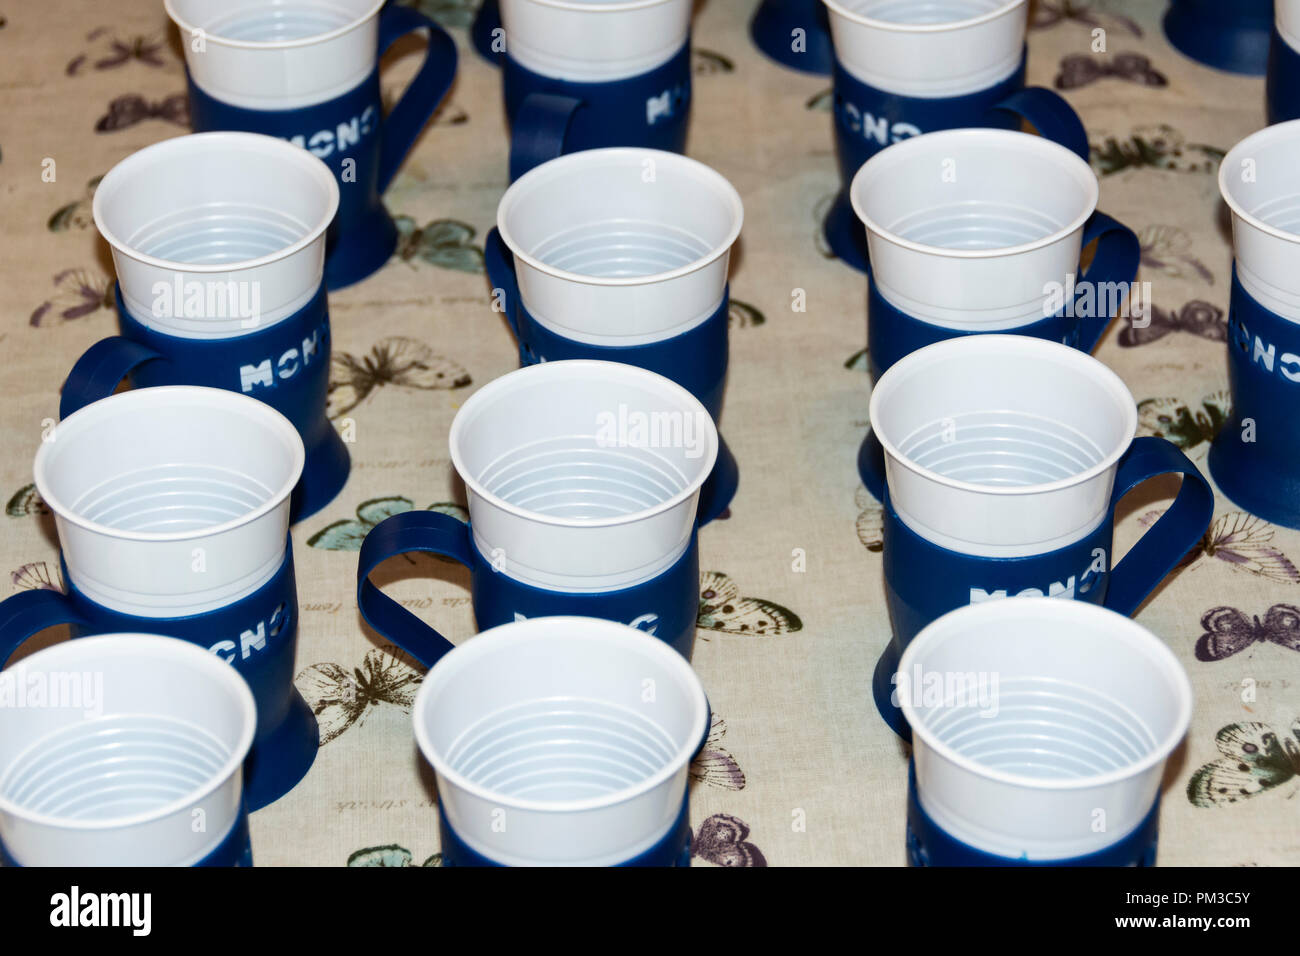 Rows of plastic cups in holders - Stock Image